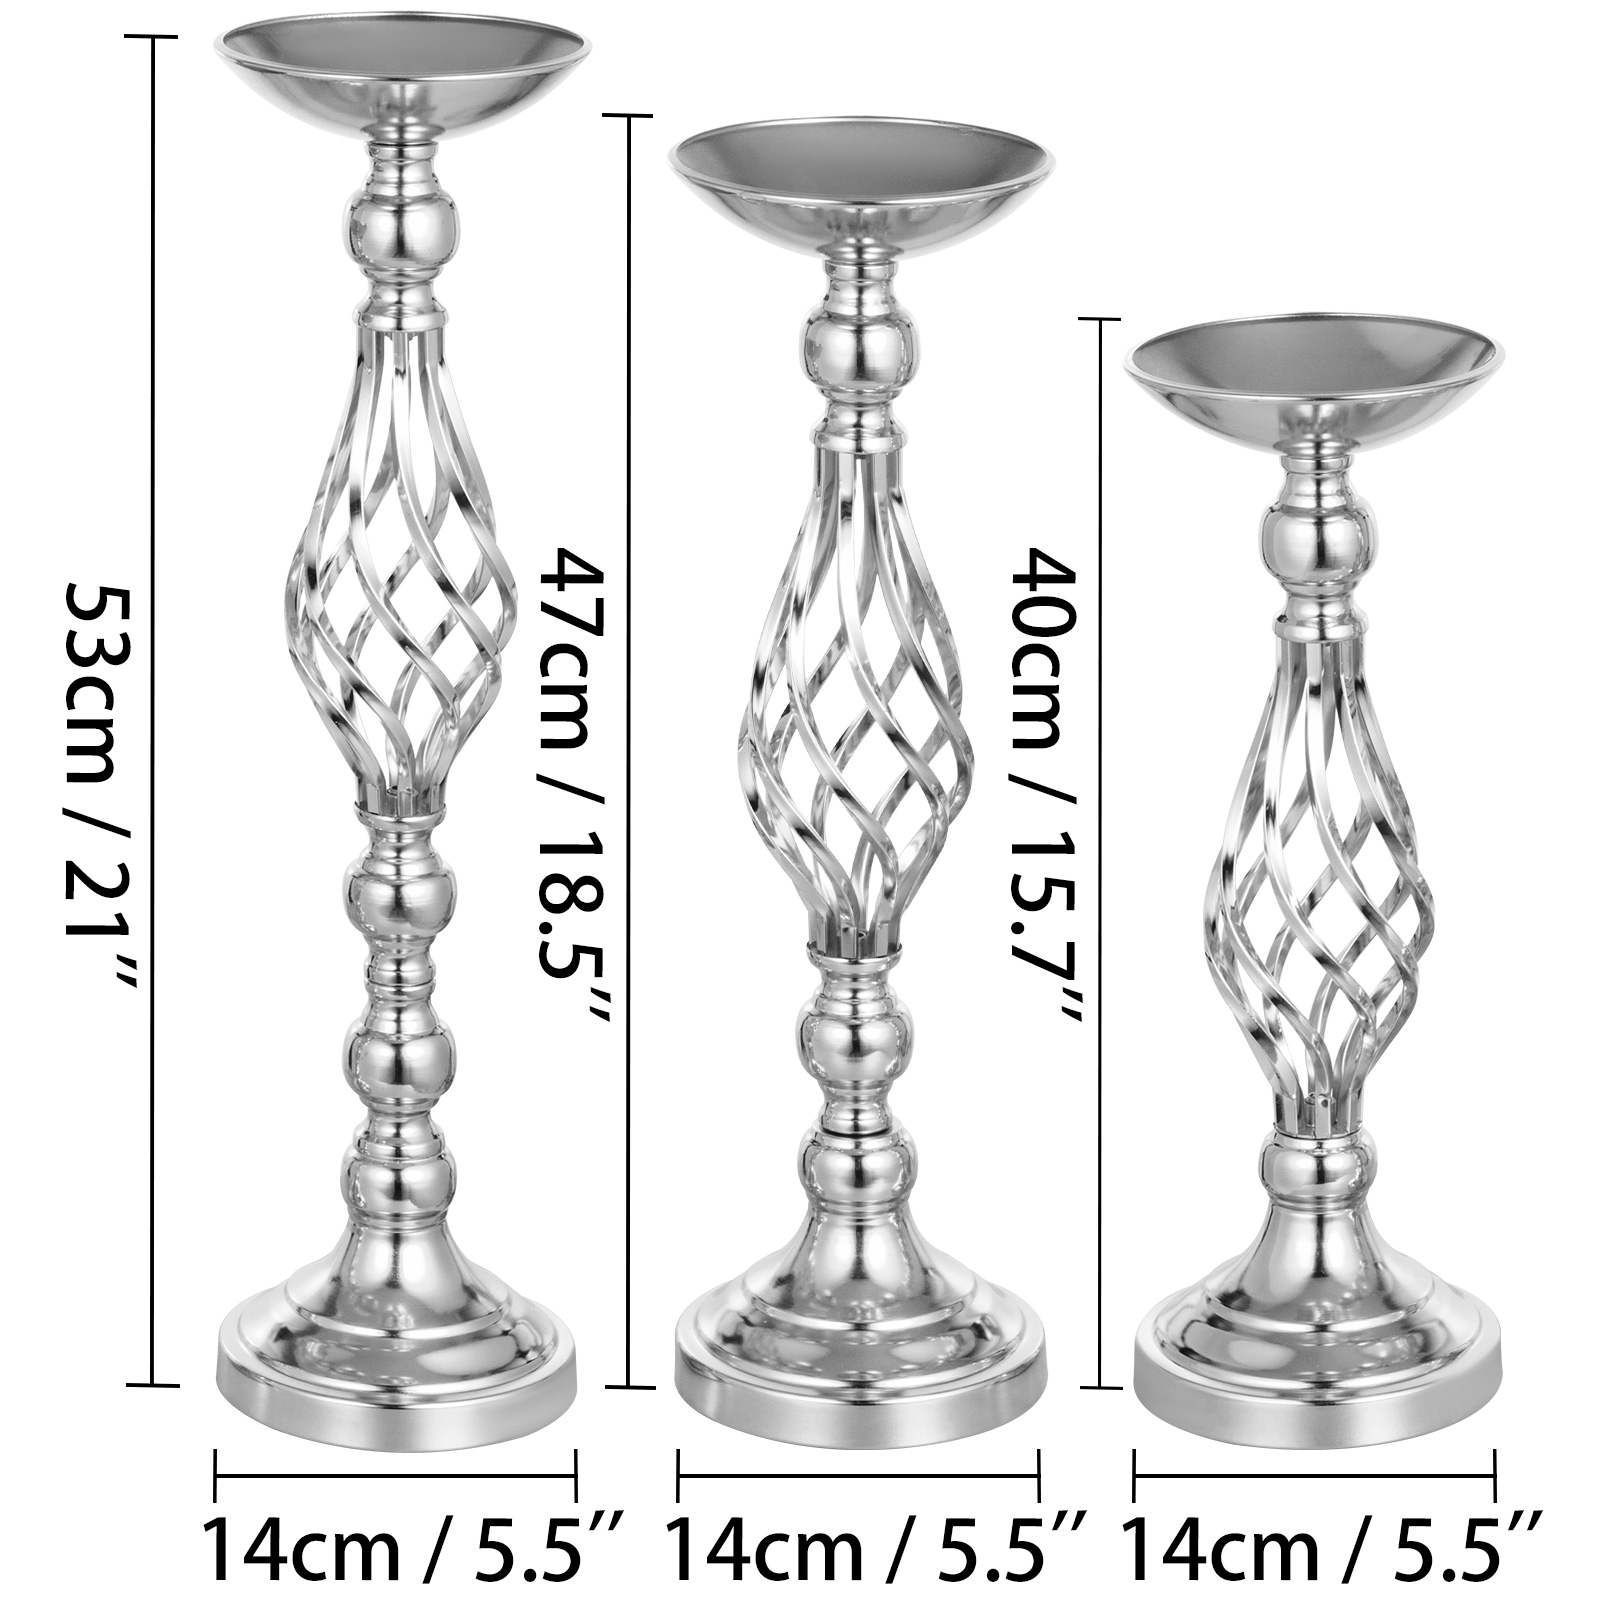 Flower-Rack-for-Wedding-Metal-Candle-Stand-4-11pcs-Centerpiece-Flower-Vase thumbnail 92